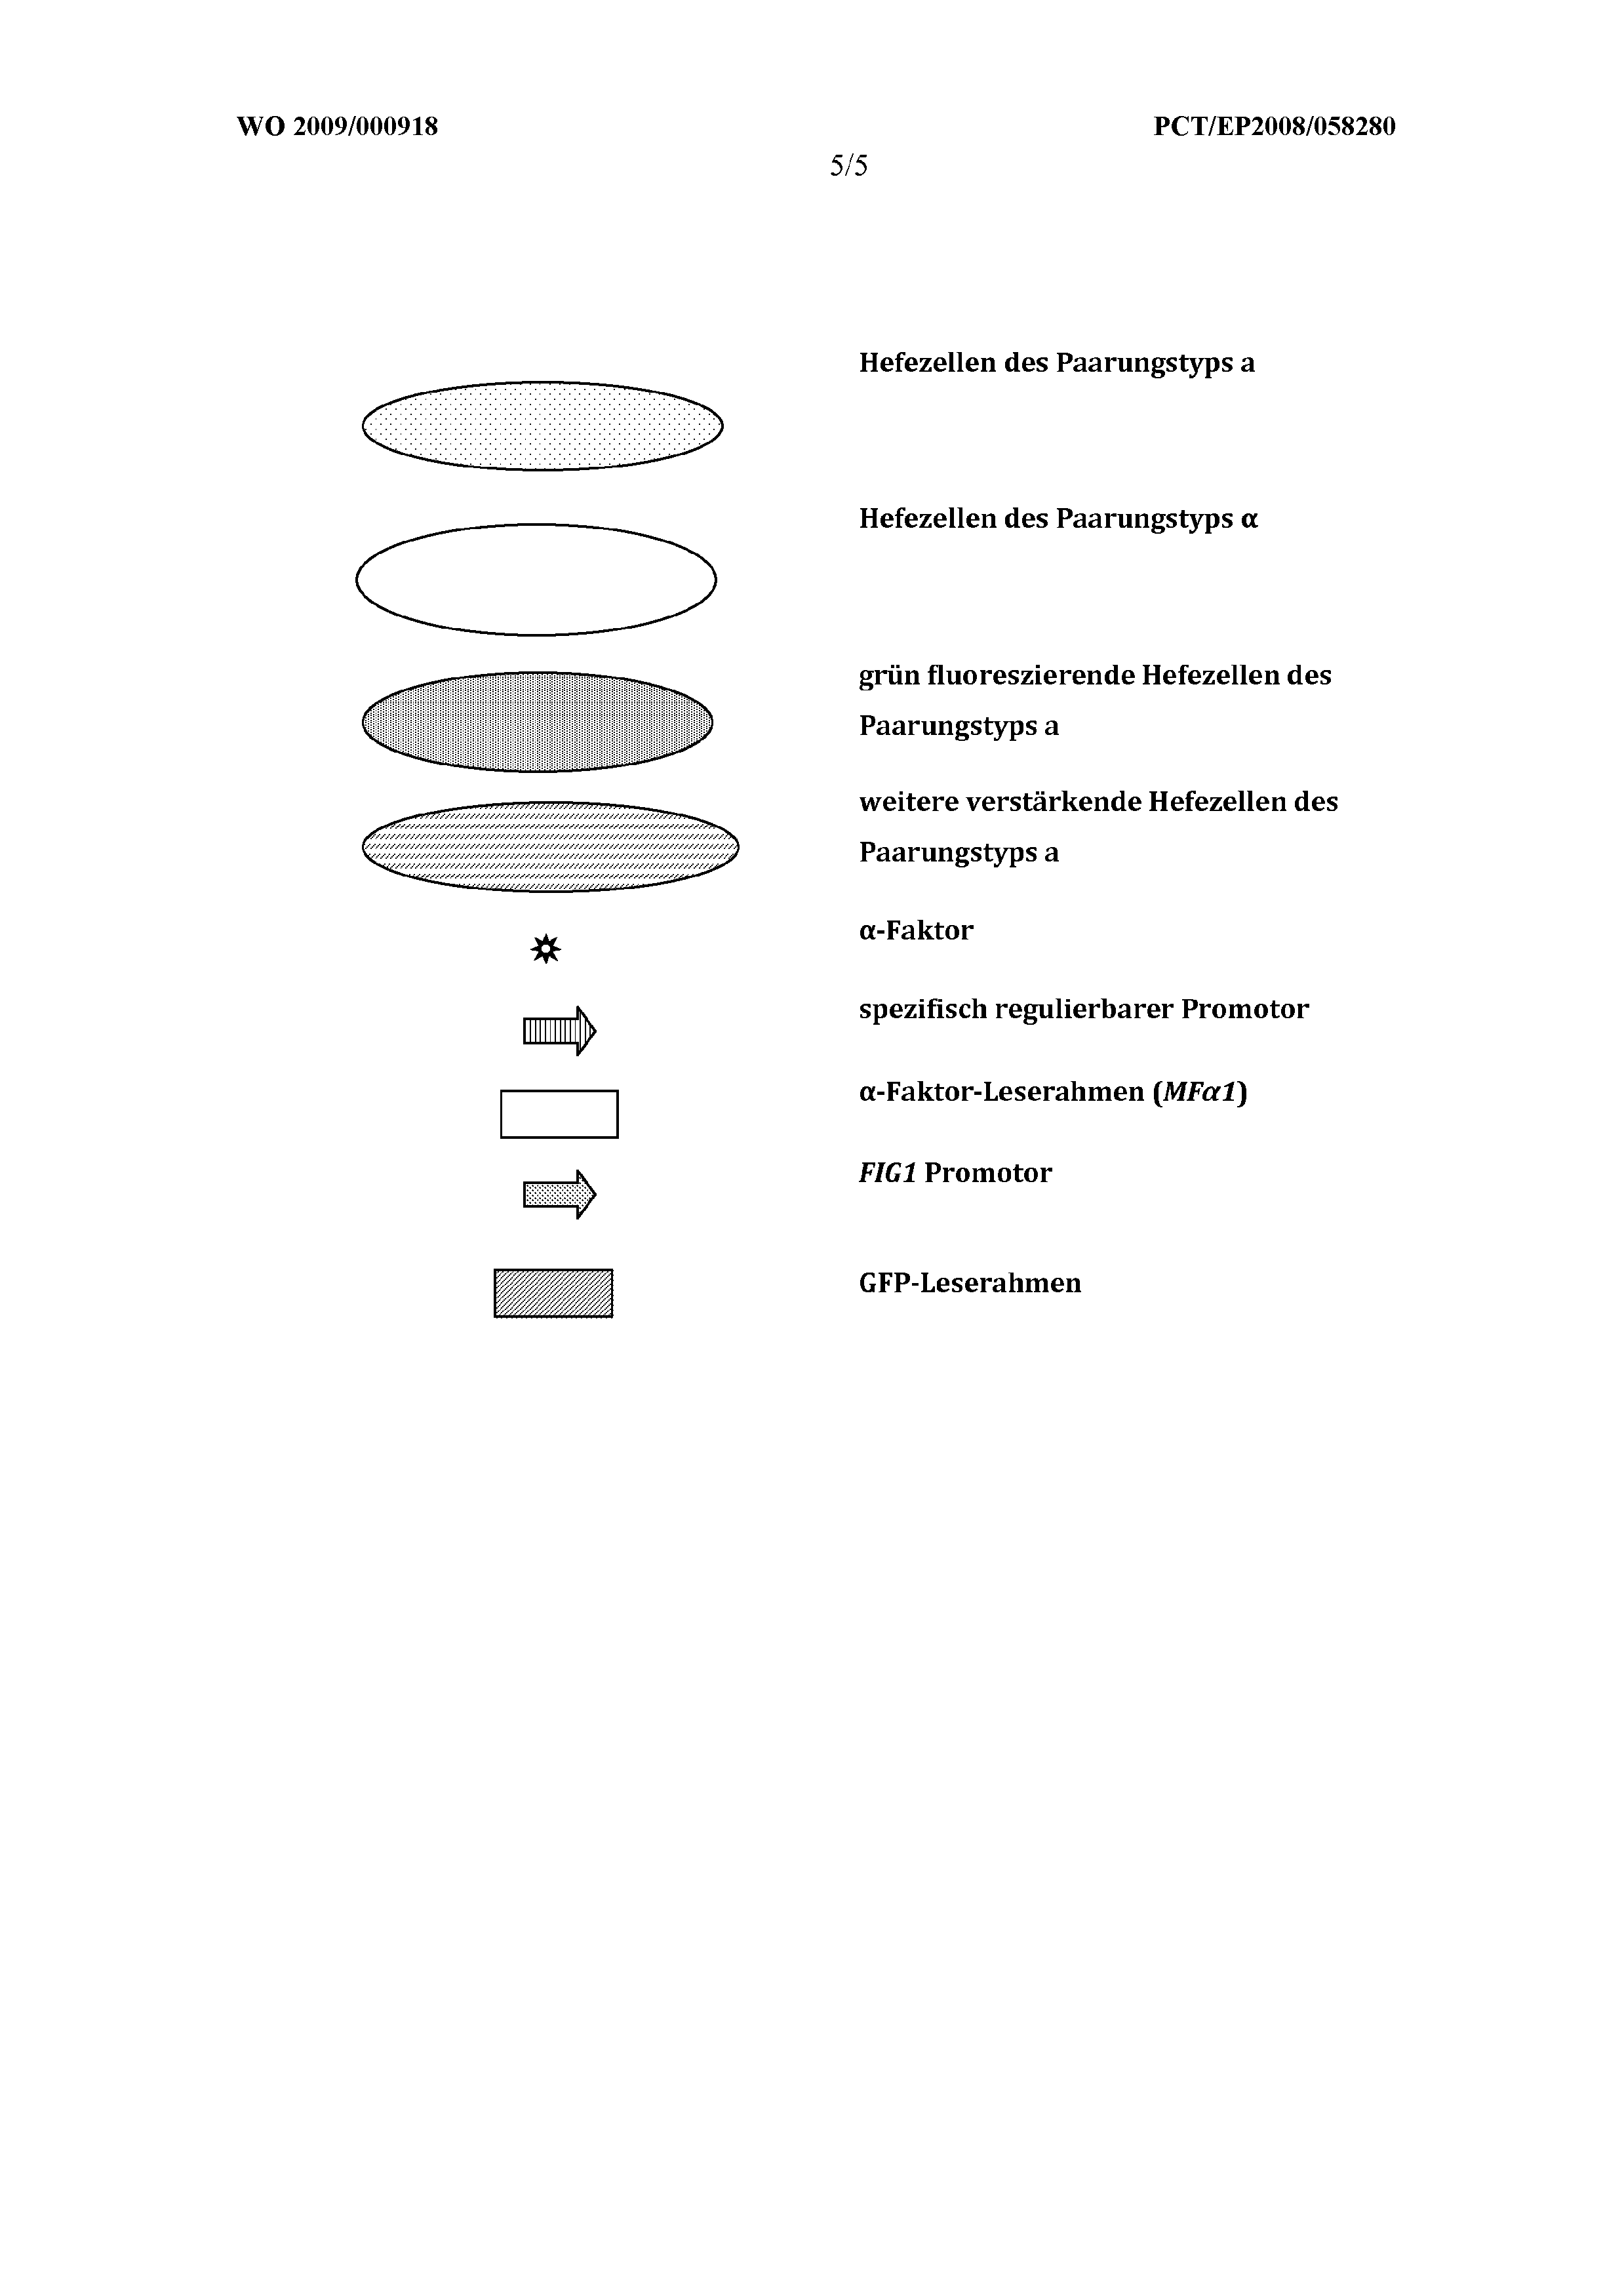 WO 2009/000918 A1 - Device And A Method For The Detection And ...